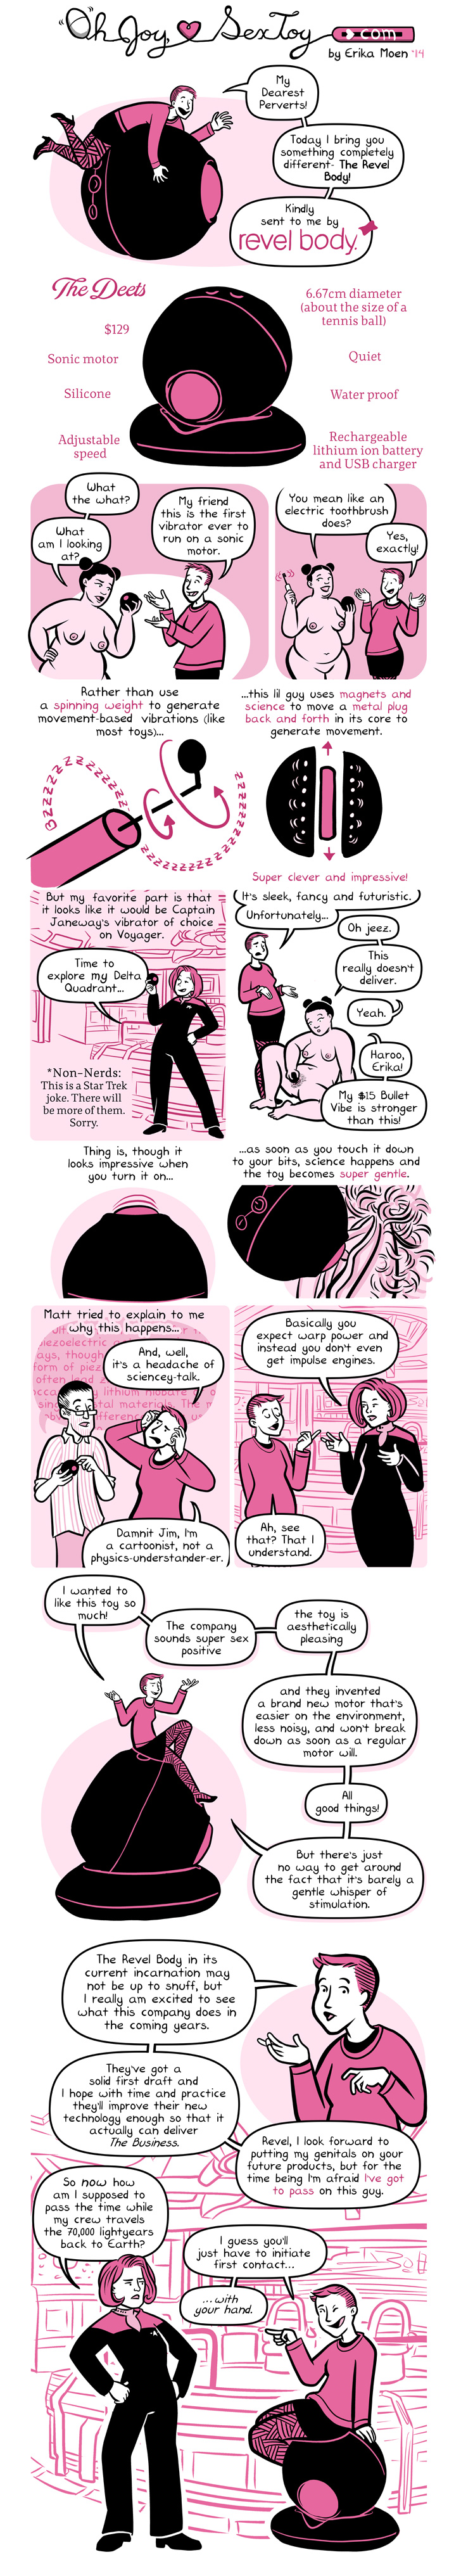 A comic about the revel body vibrator, which says it seems like a vibrator from star trek. However, it is not very strong.